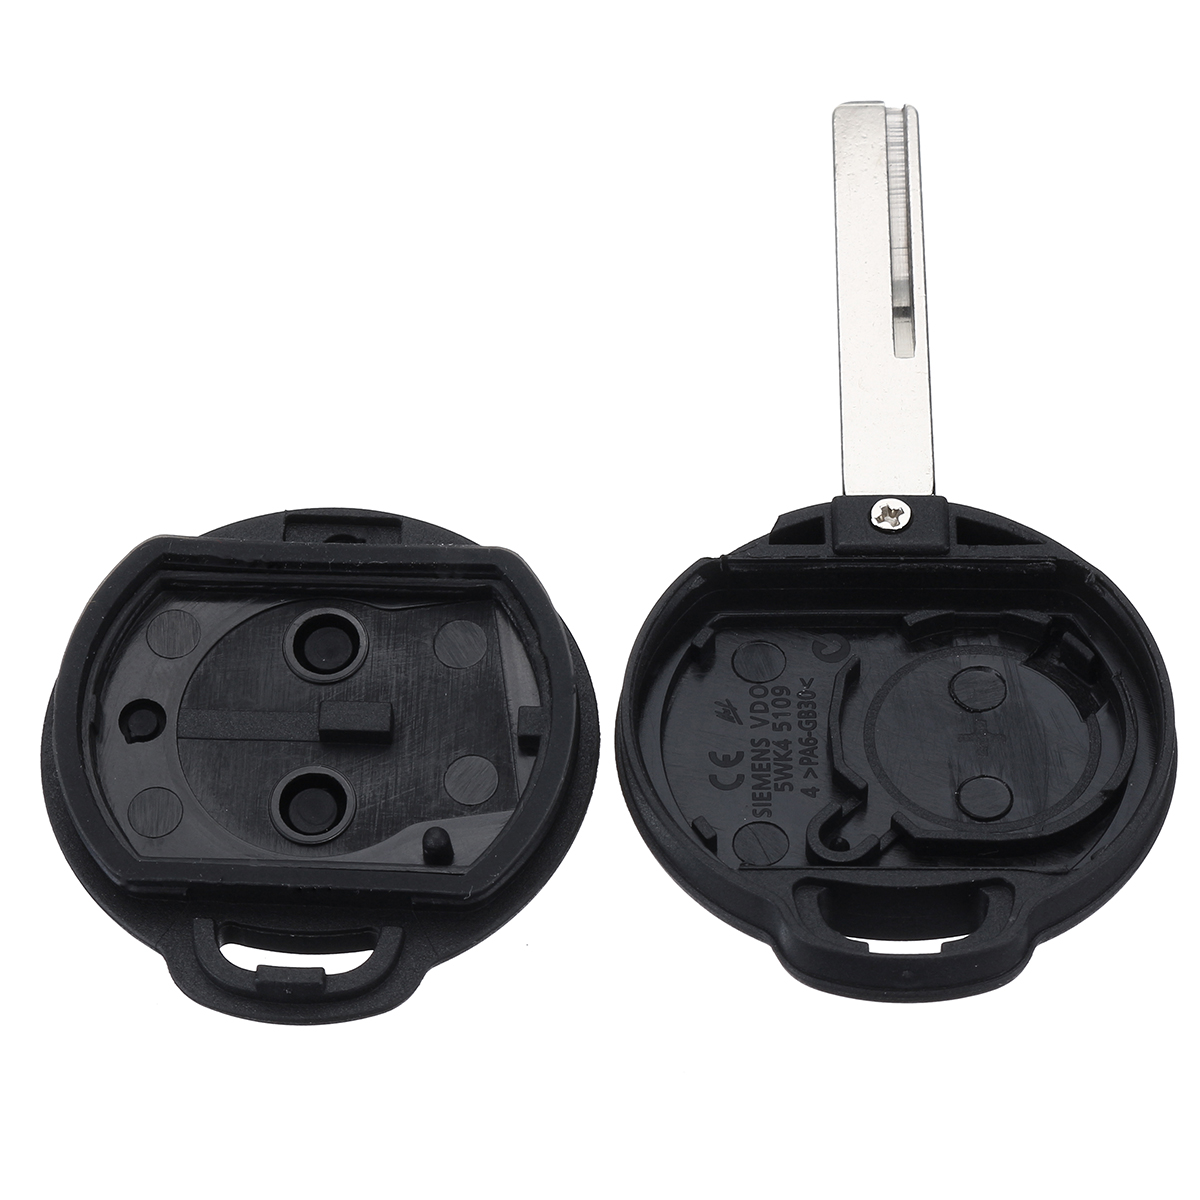 2 Buttons Remote Key Case Fob Shell For Benz Mercedes Smart Forfour